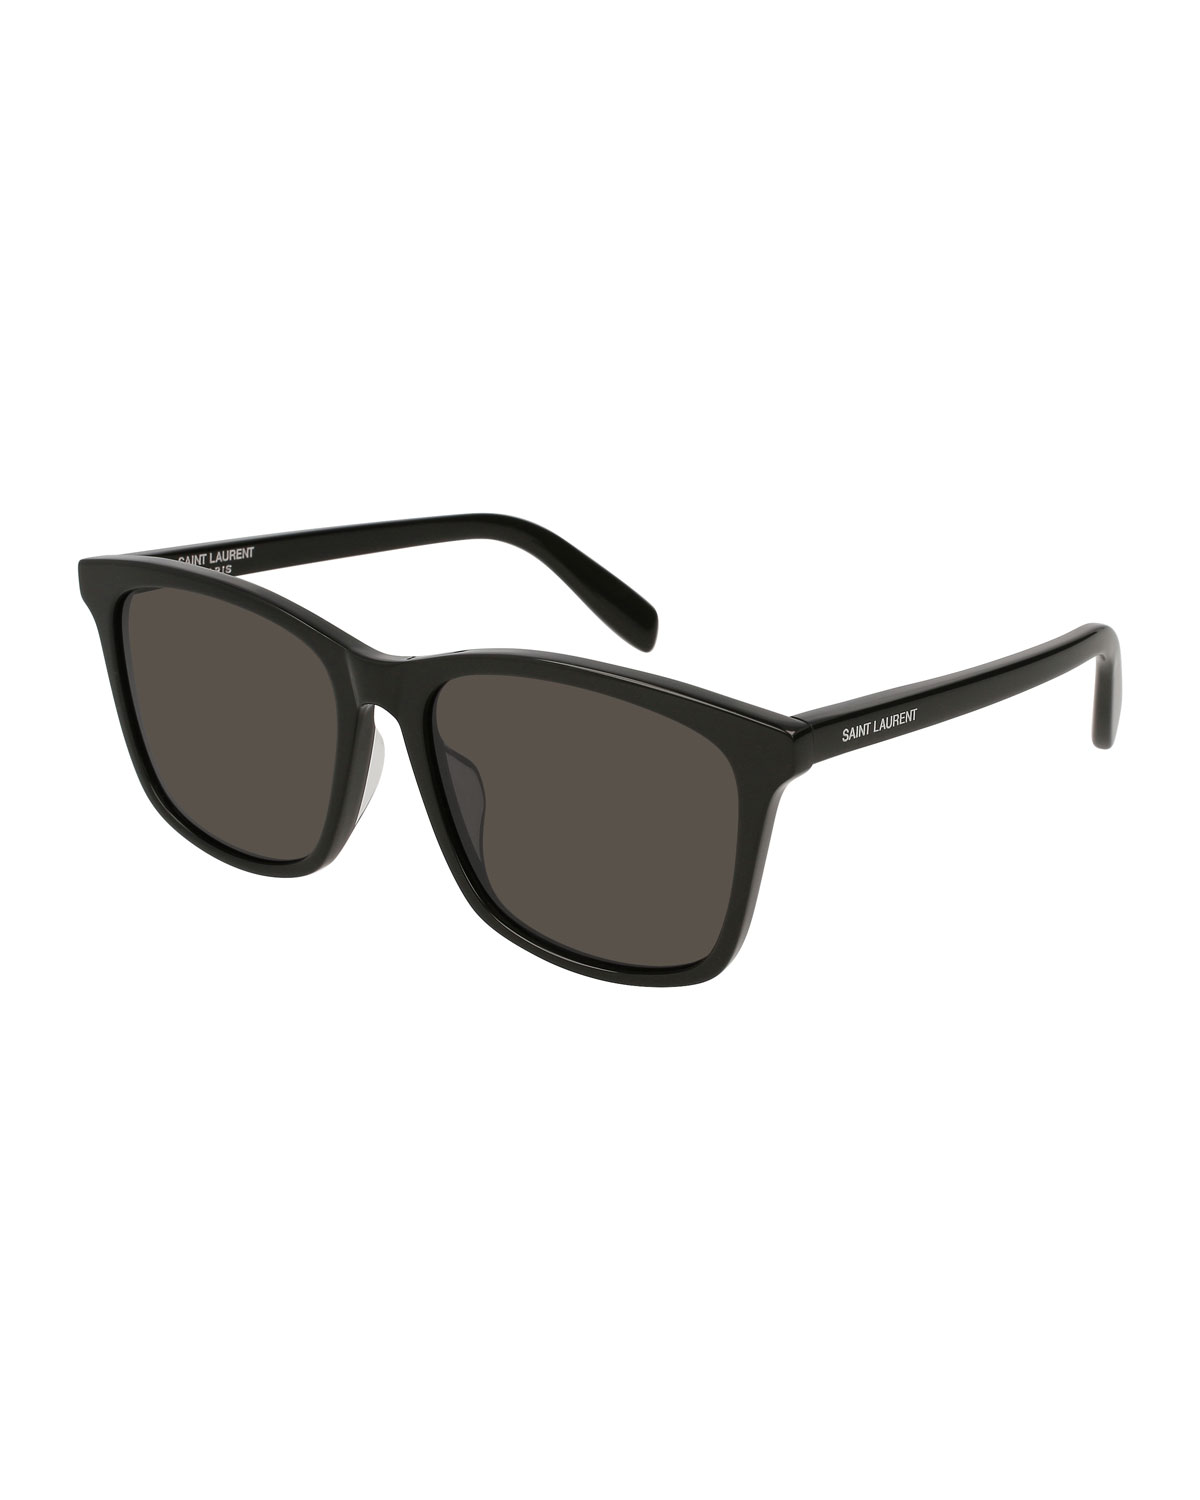 f99d4fdd655 Saint Laurent Square Acetate Sunglasses